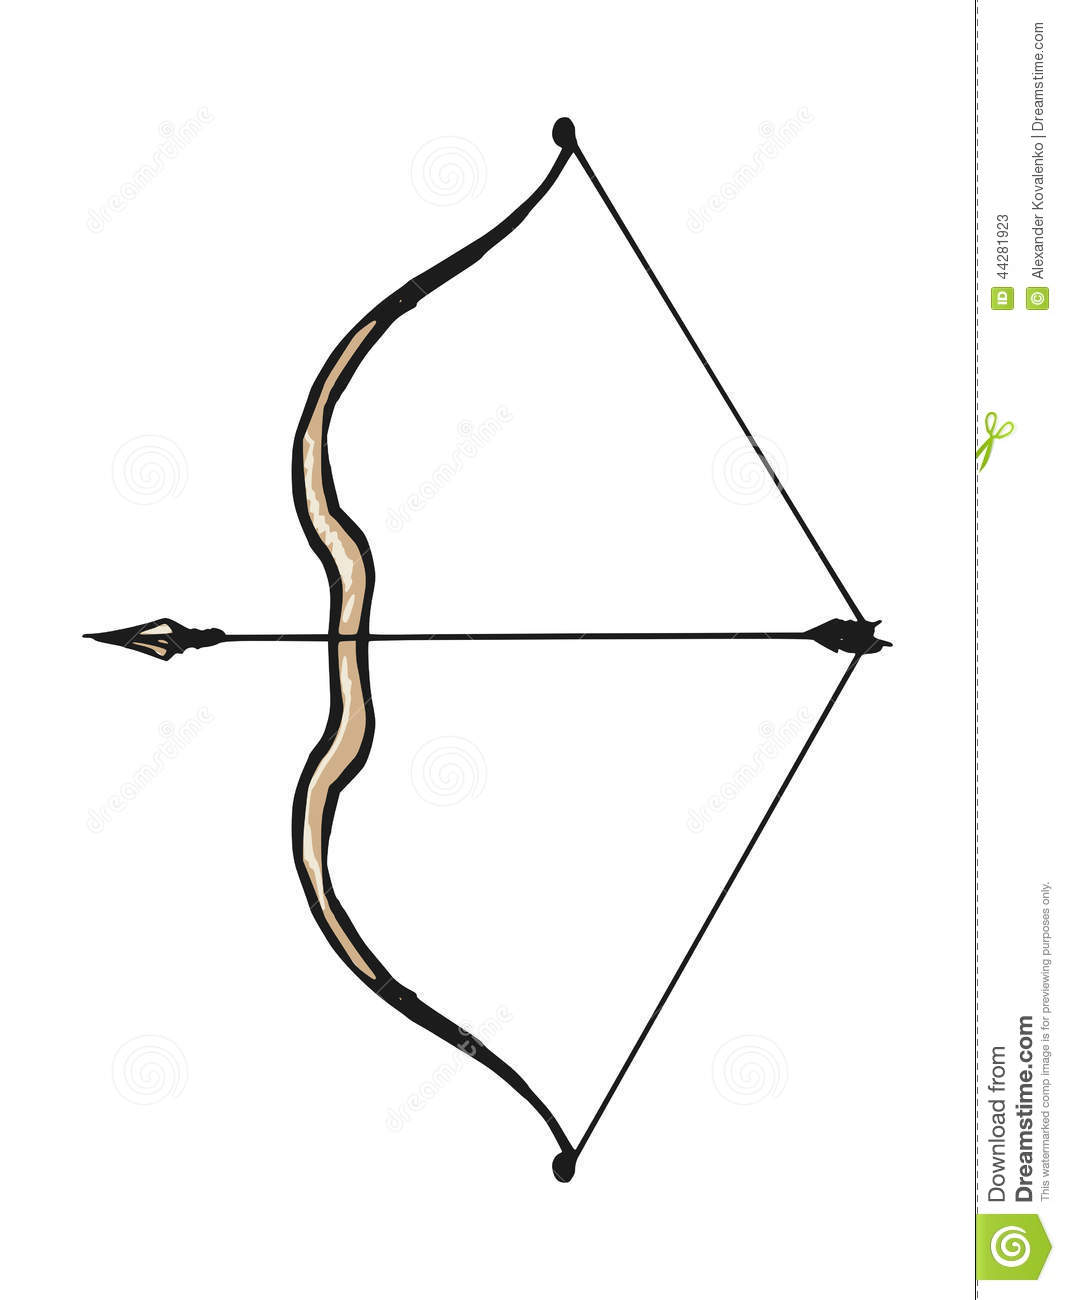 Hand drawn, doodle, sketch illustration of bow and arrow.